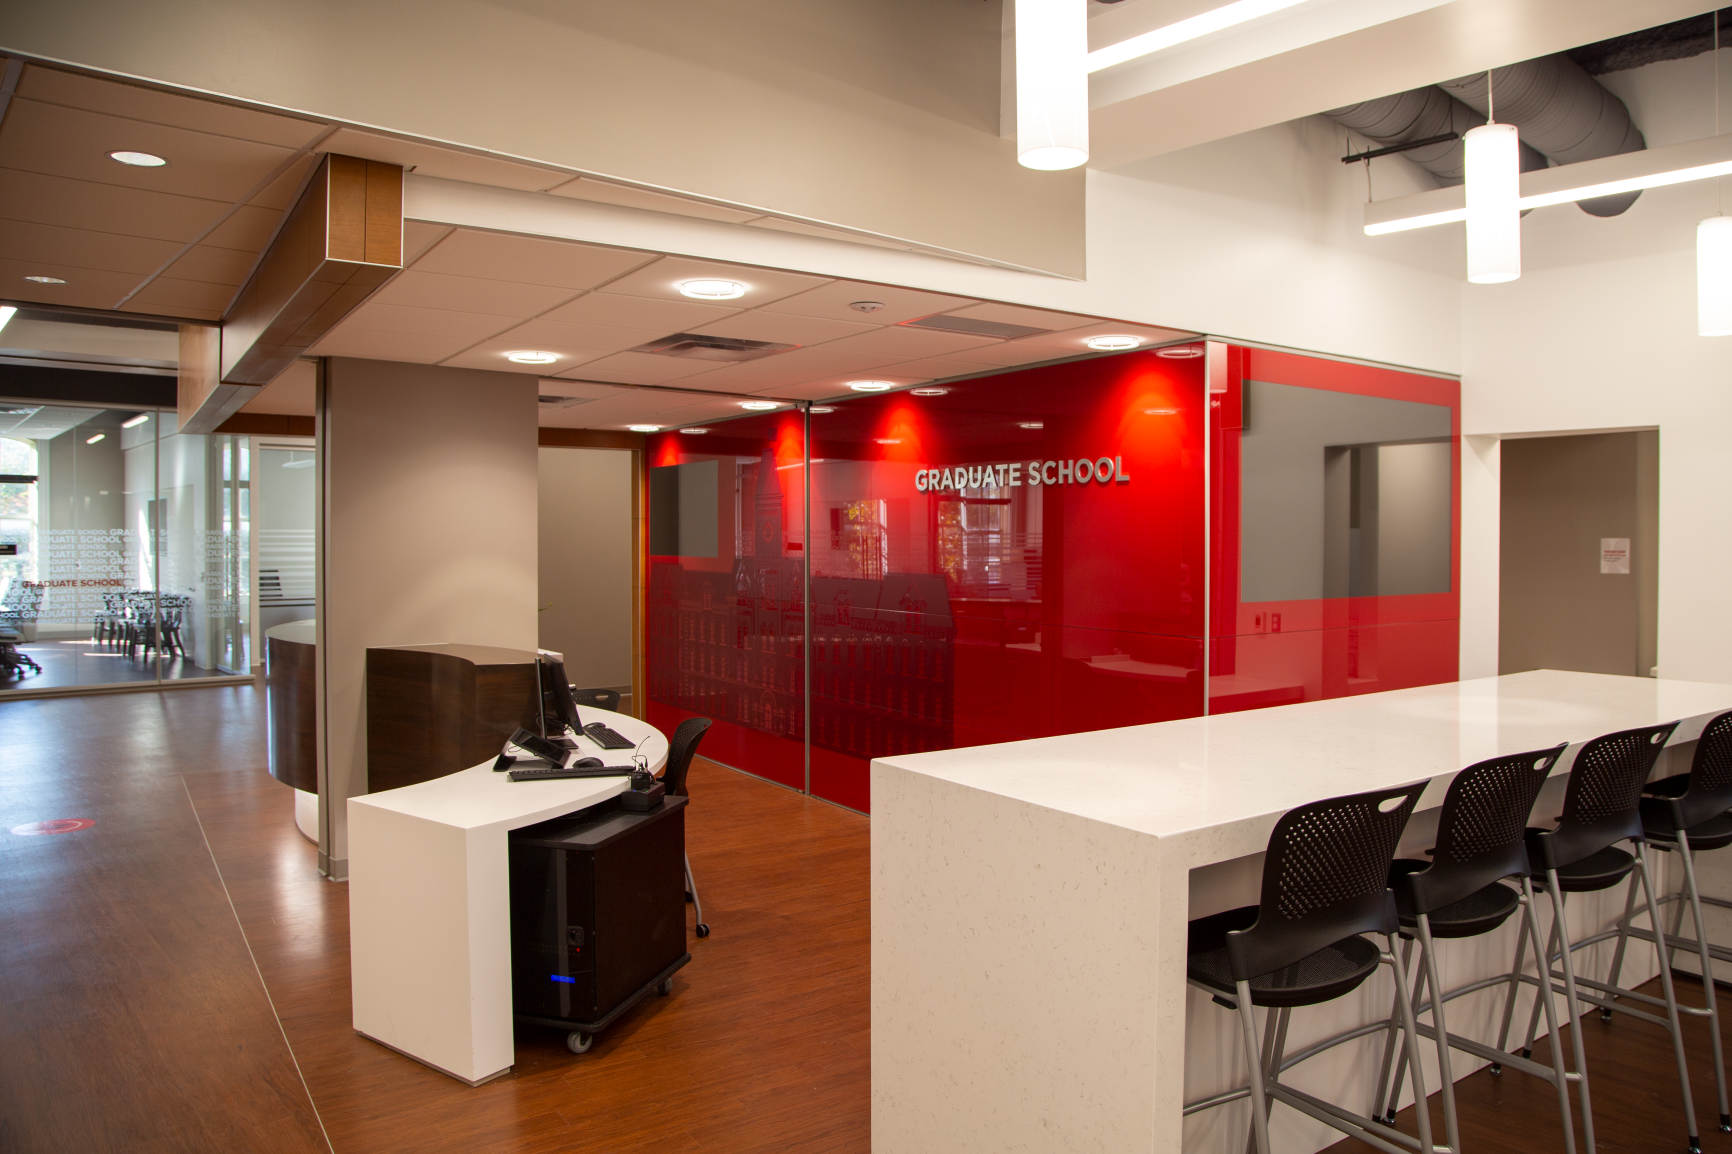 A drop-zone workspace sits just behind the desk and is great for students or staff at the Graduate School in University Hall at The Ohio State University by Continental Office